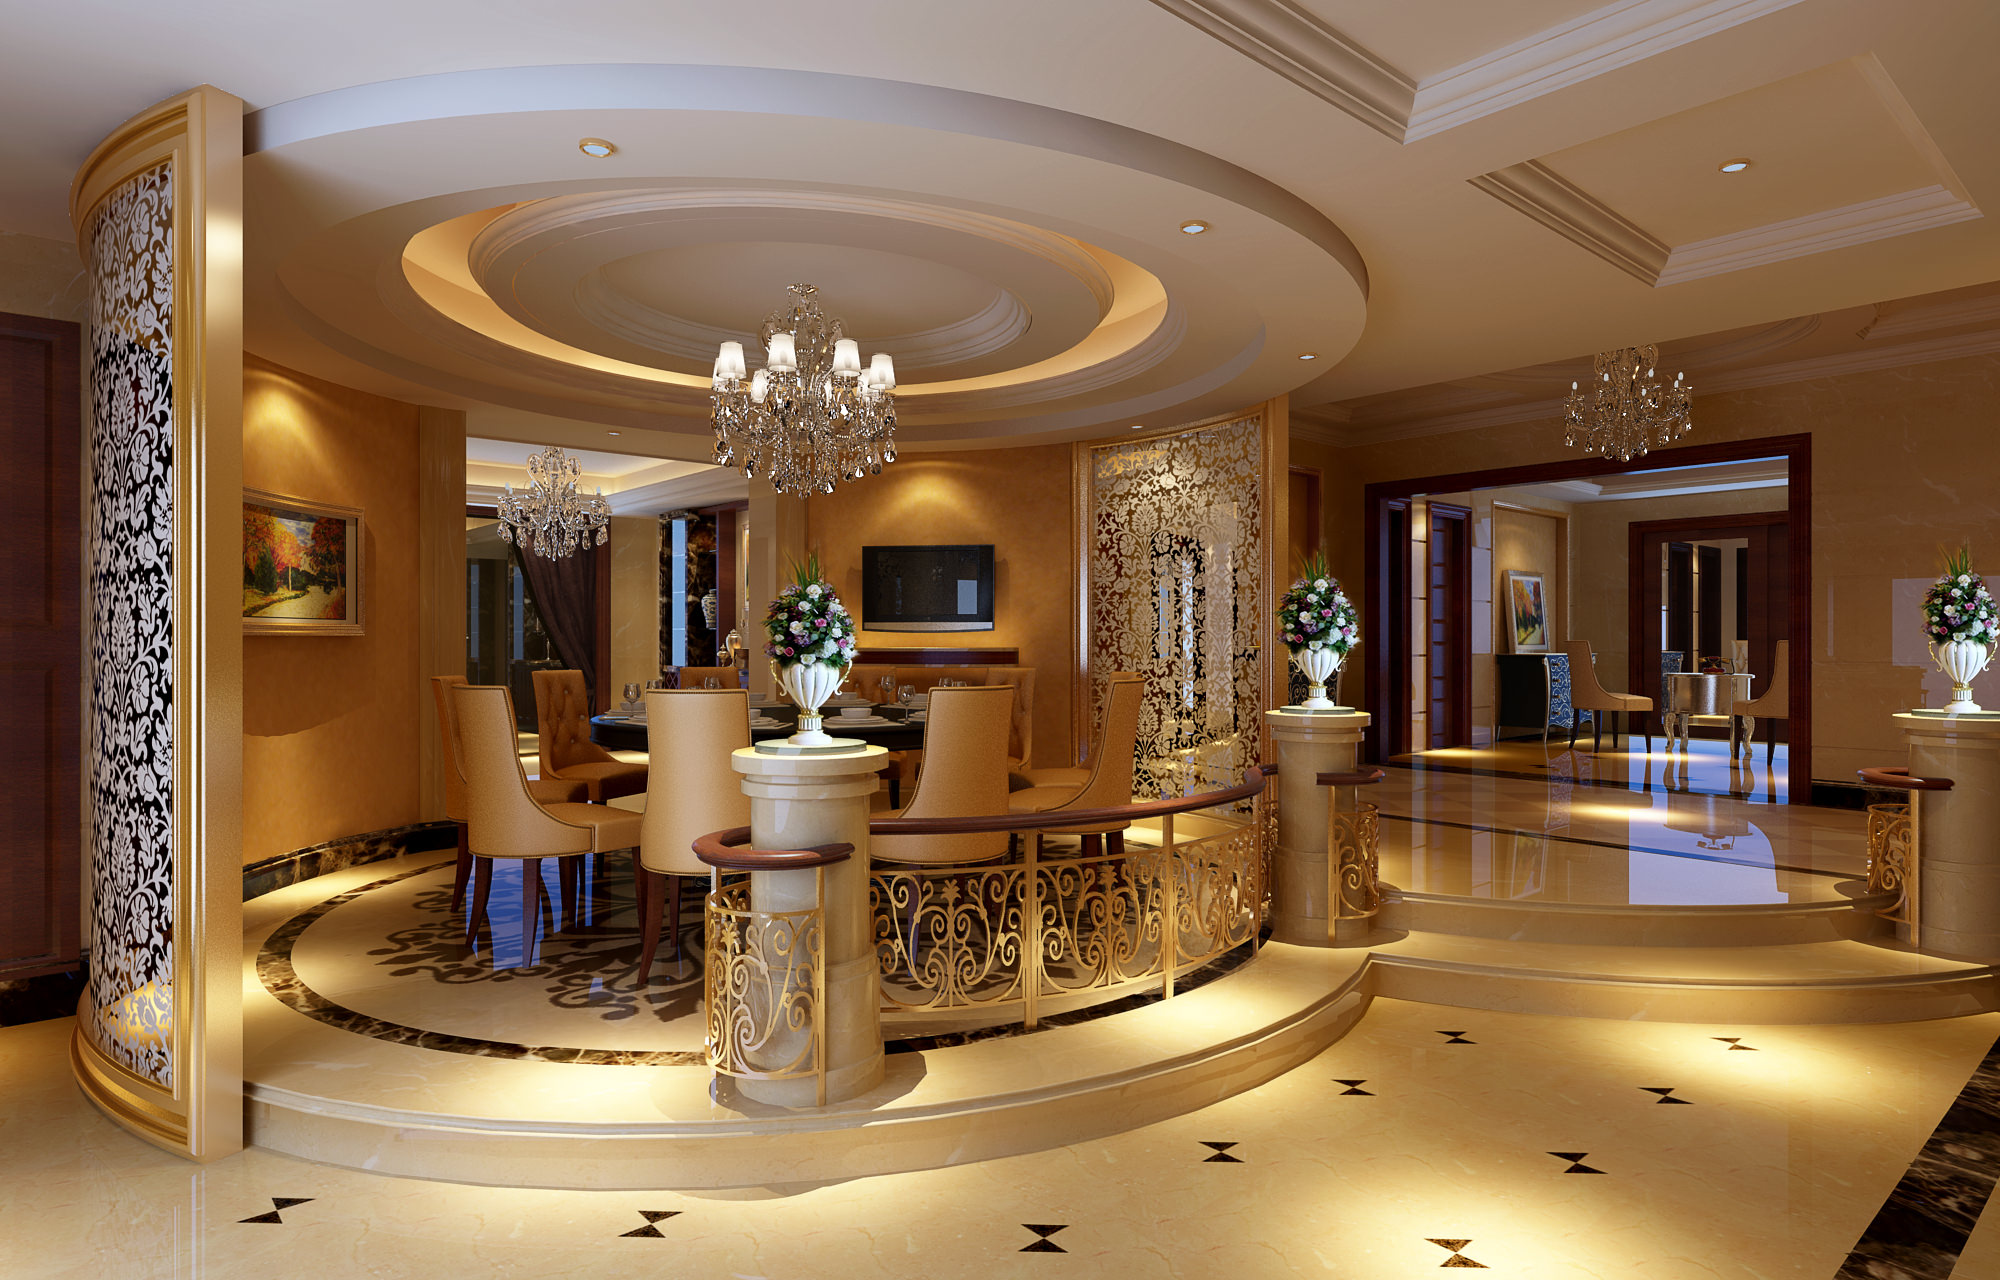 Luxurious Dining Room With Marble Floor Fu 3D Model